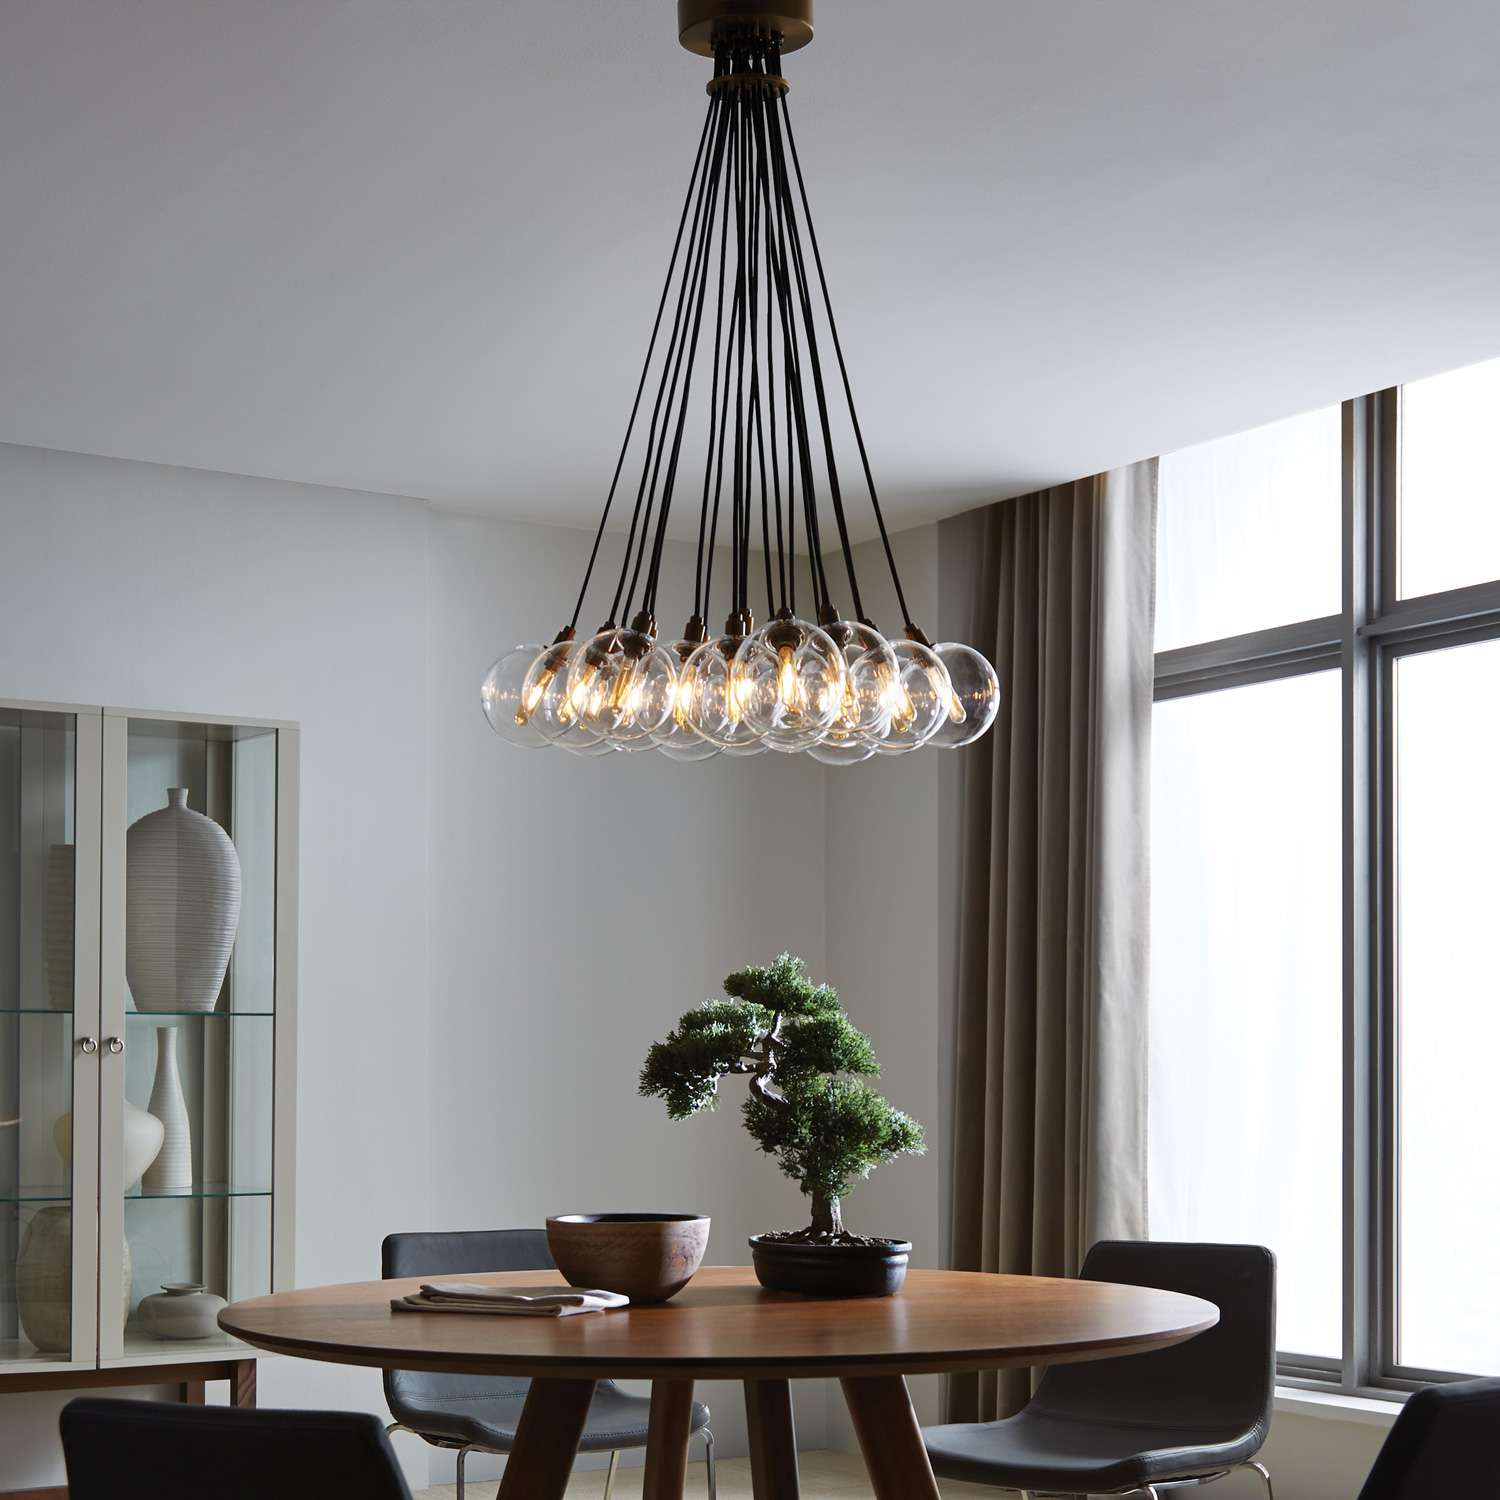 10 modern options for ambient lighting design necessities lighting gambit 19 lite led chandelier from tech lighting arubaitofo Image collections